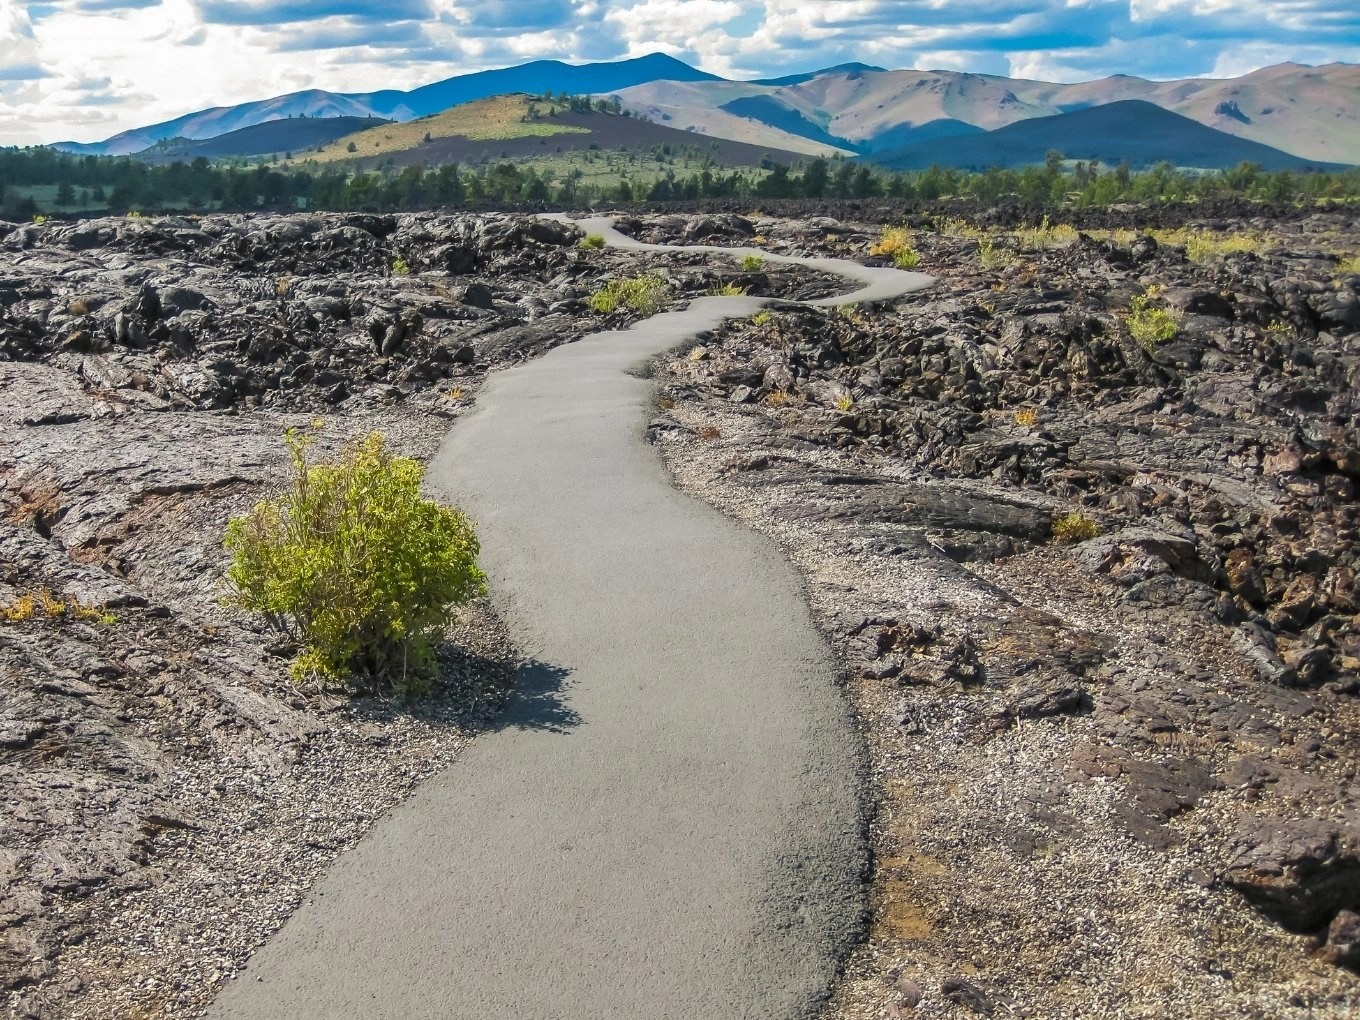 Planning Your Trip To Craters of the Moon